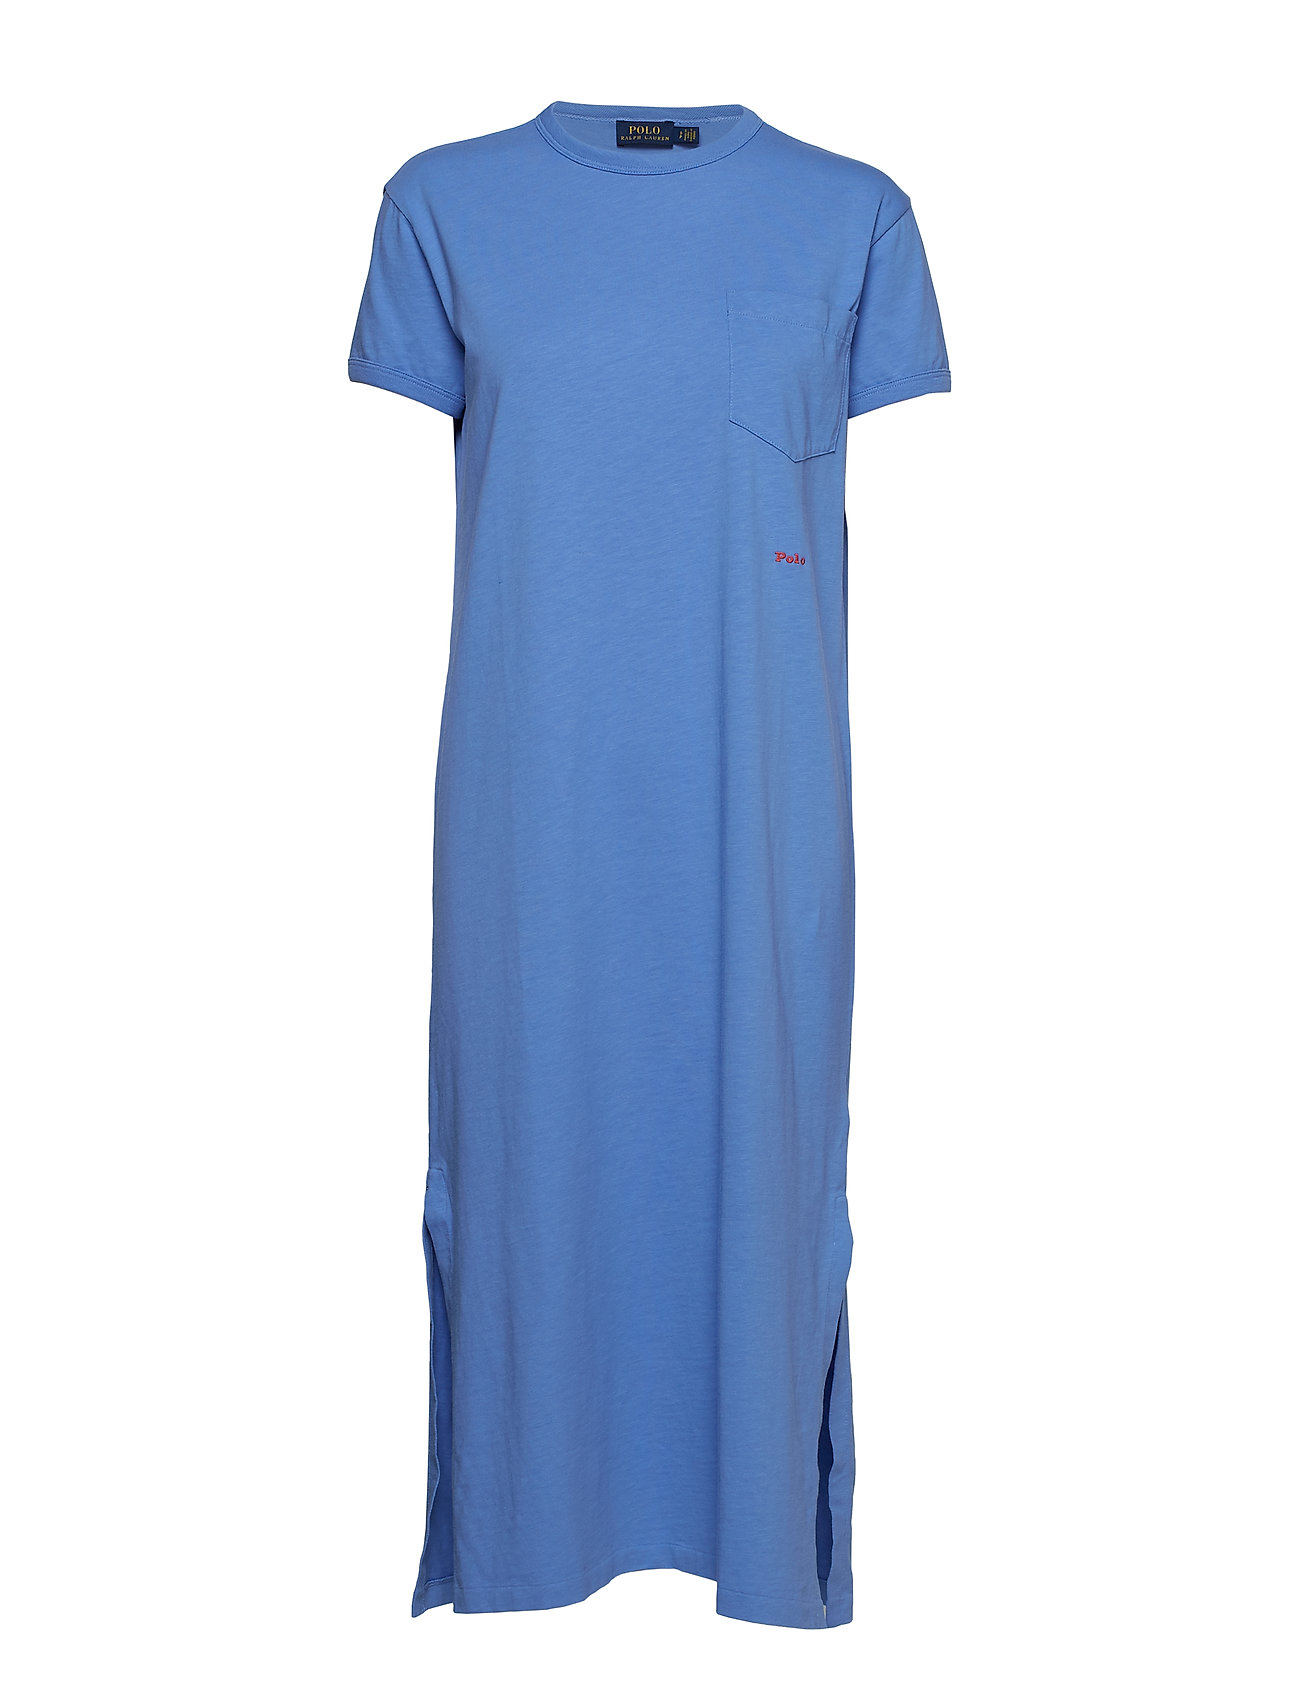 Polo Ralph Lauren Cotton T-Shirt Dress - LAKE BLUE